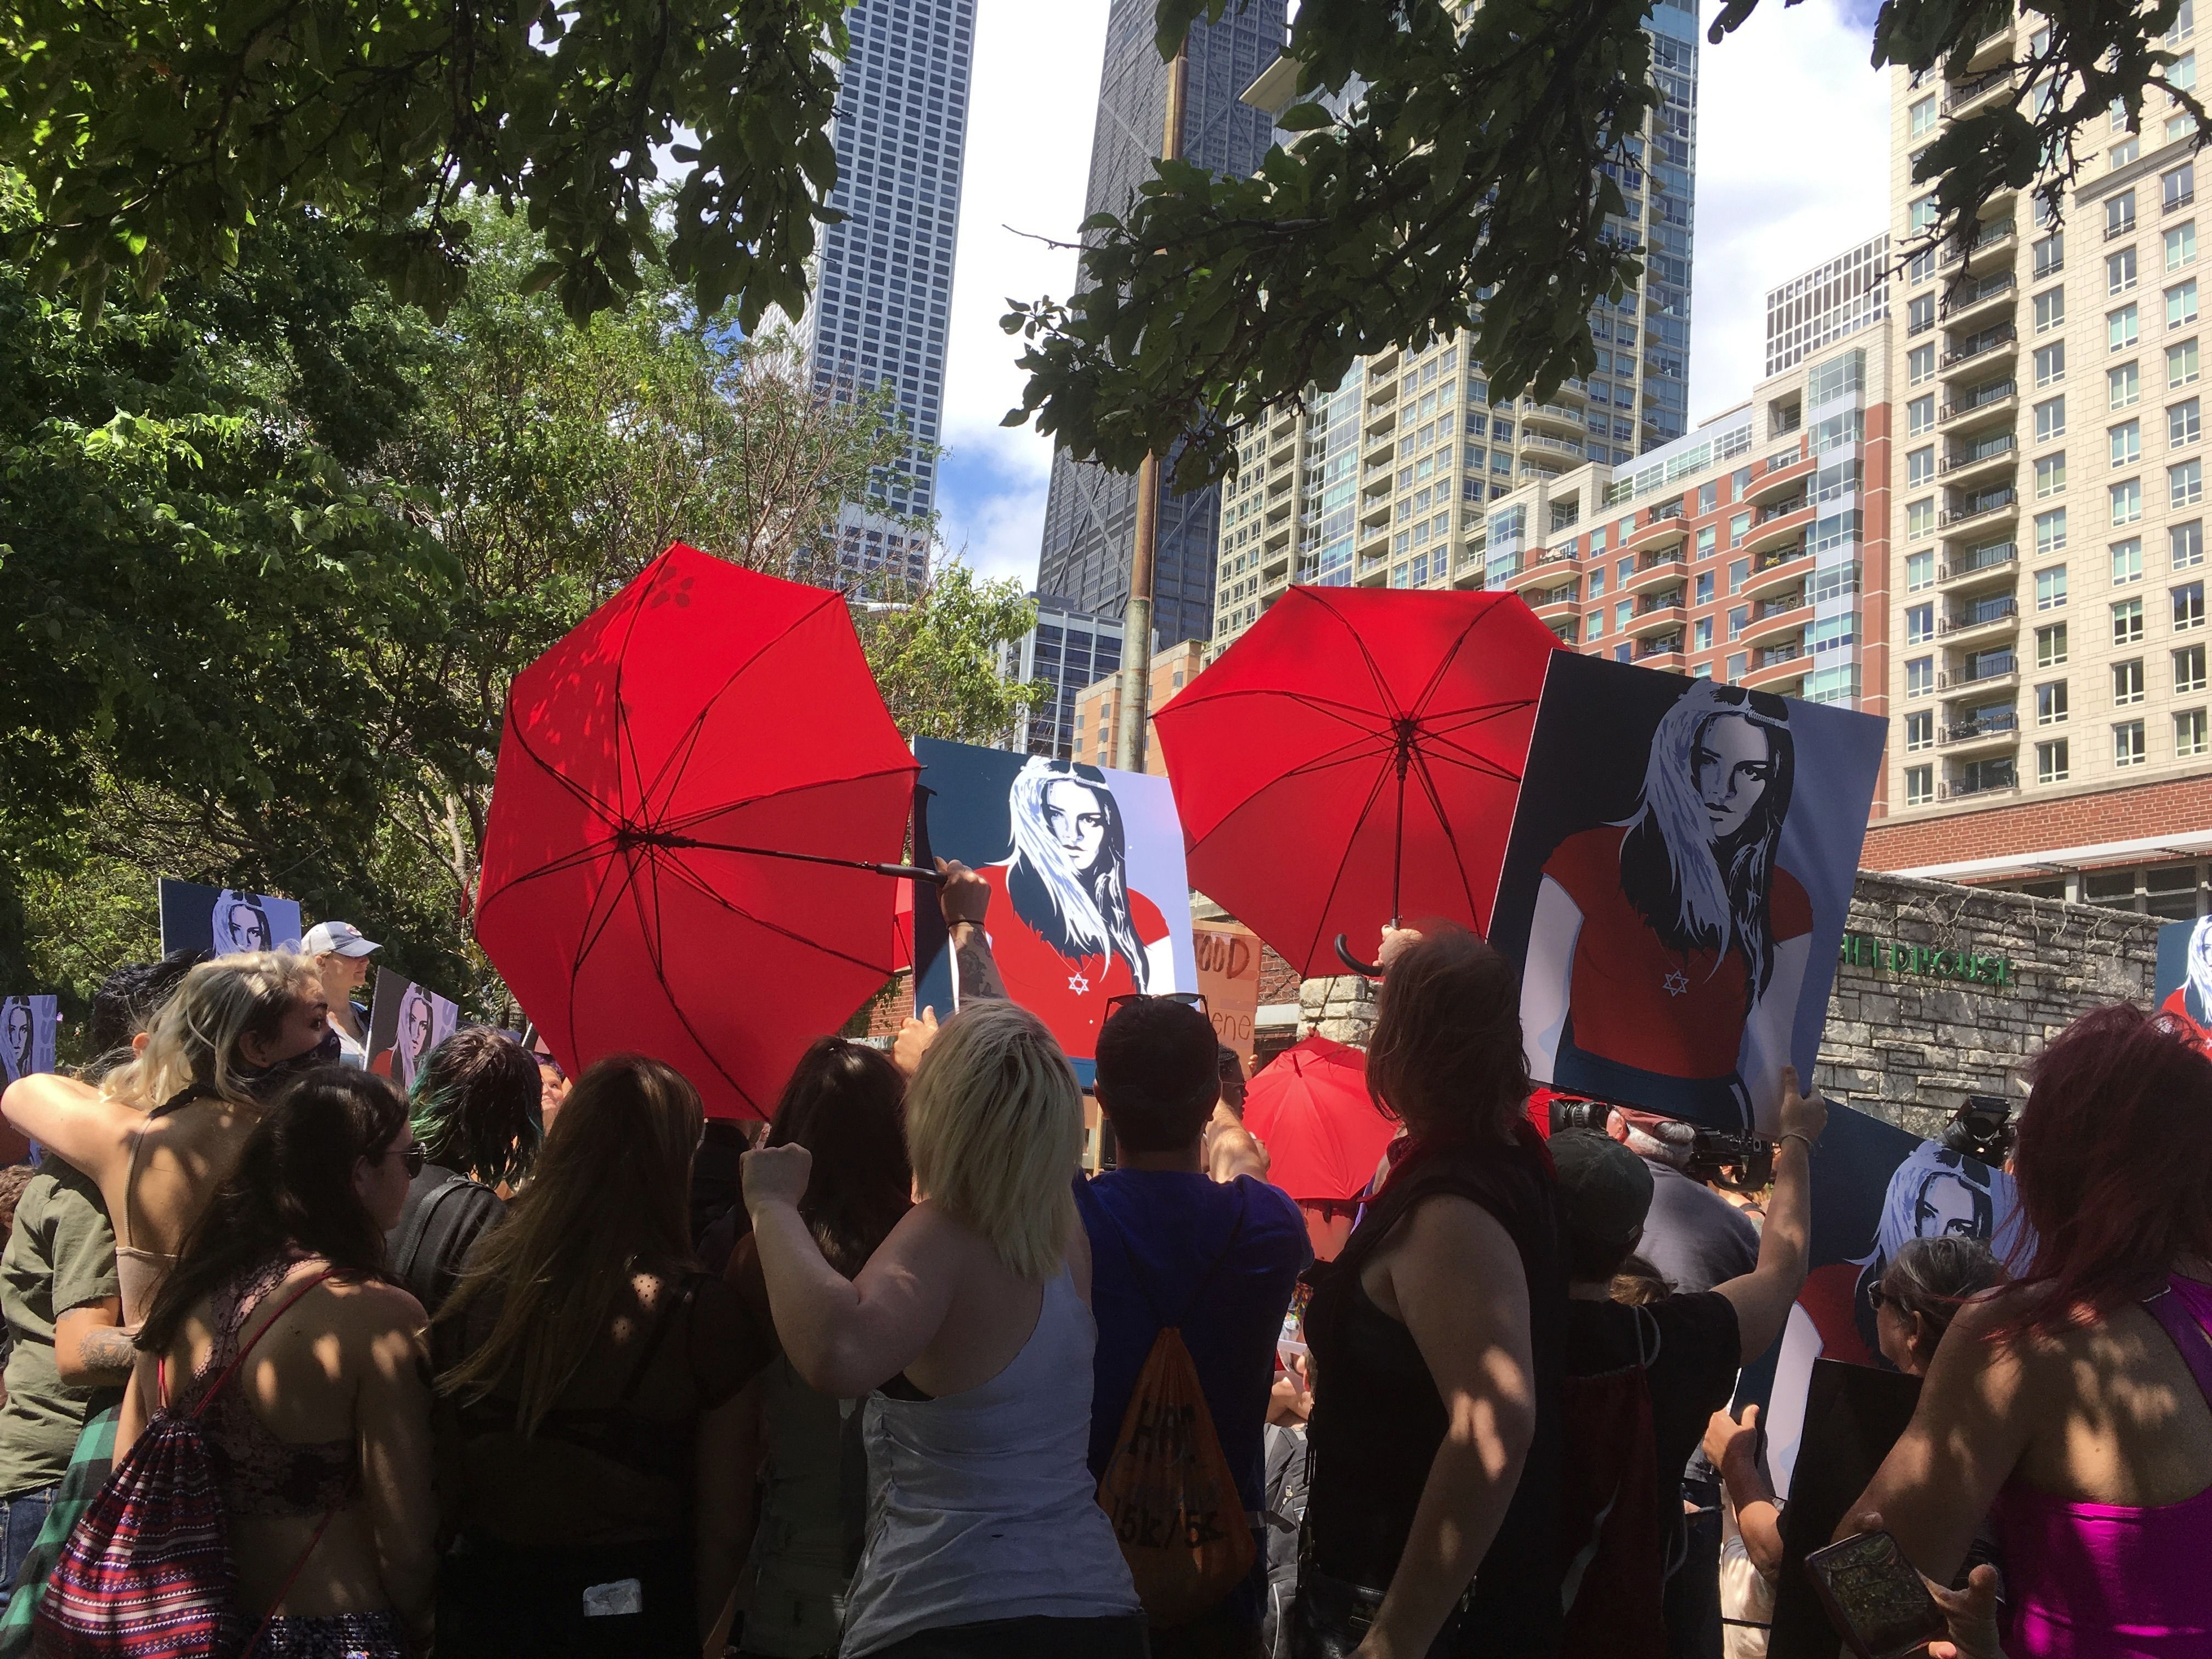 Participants at SlutWalk Chicago hold up umbrellas to hinder the view of the progressive Zionist women's group Zioness.